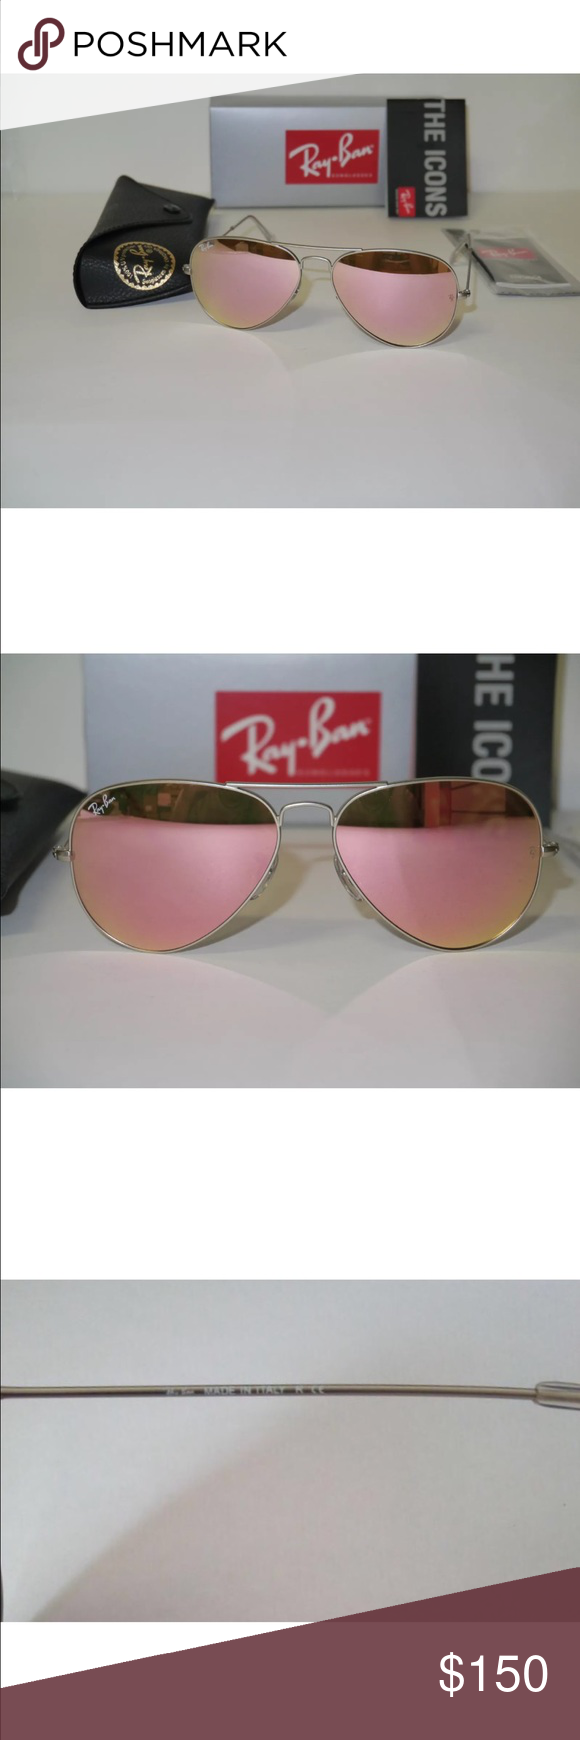 ray bands sun glasses  Authentic Pink Aviator Ray Bans Authentic Pink Aviator Ray Bans ...